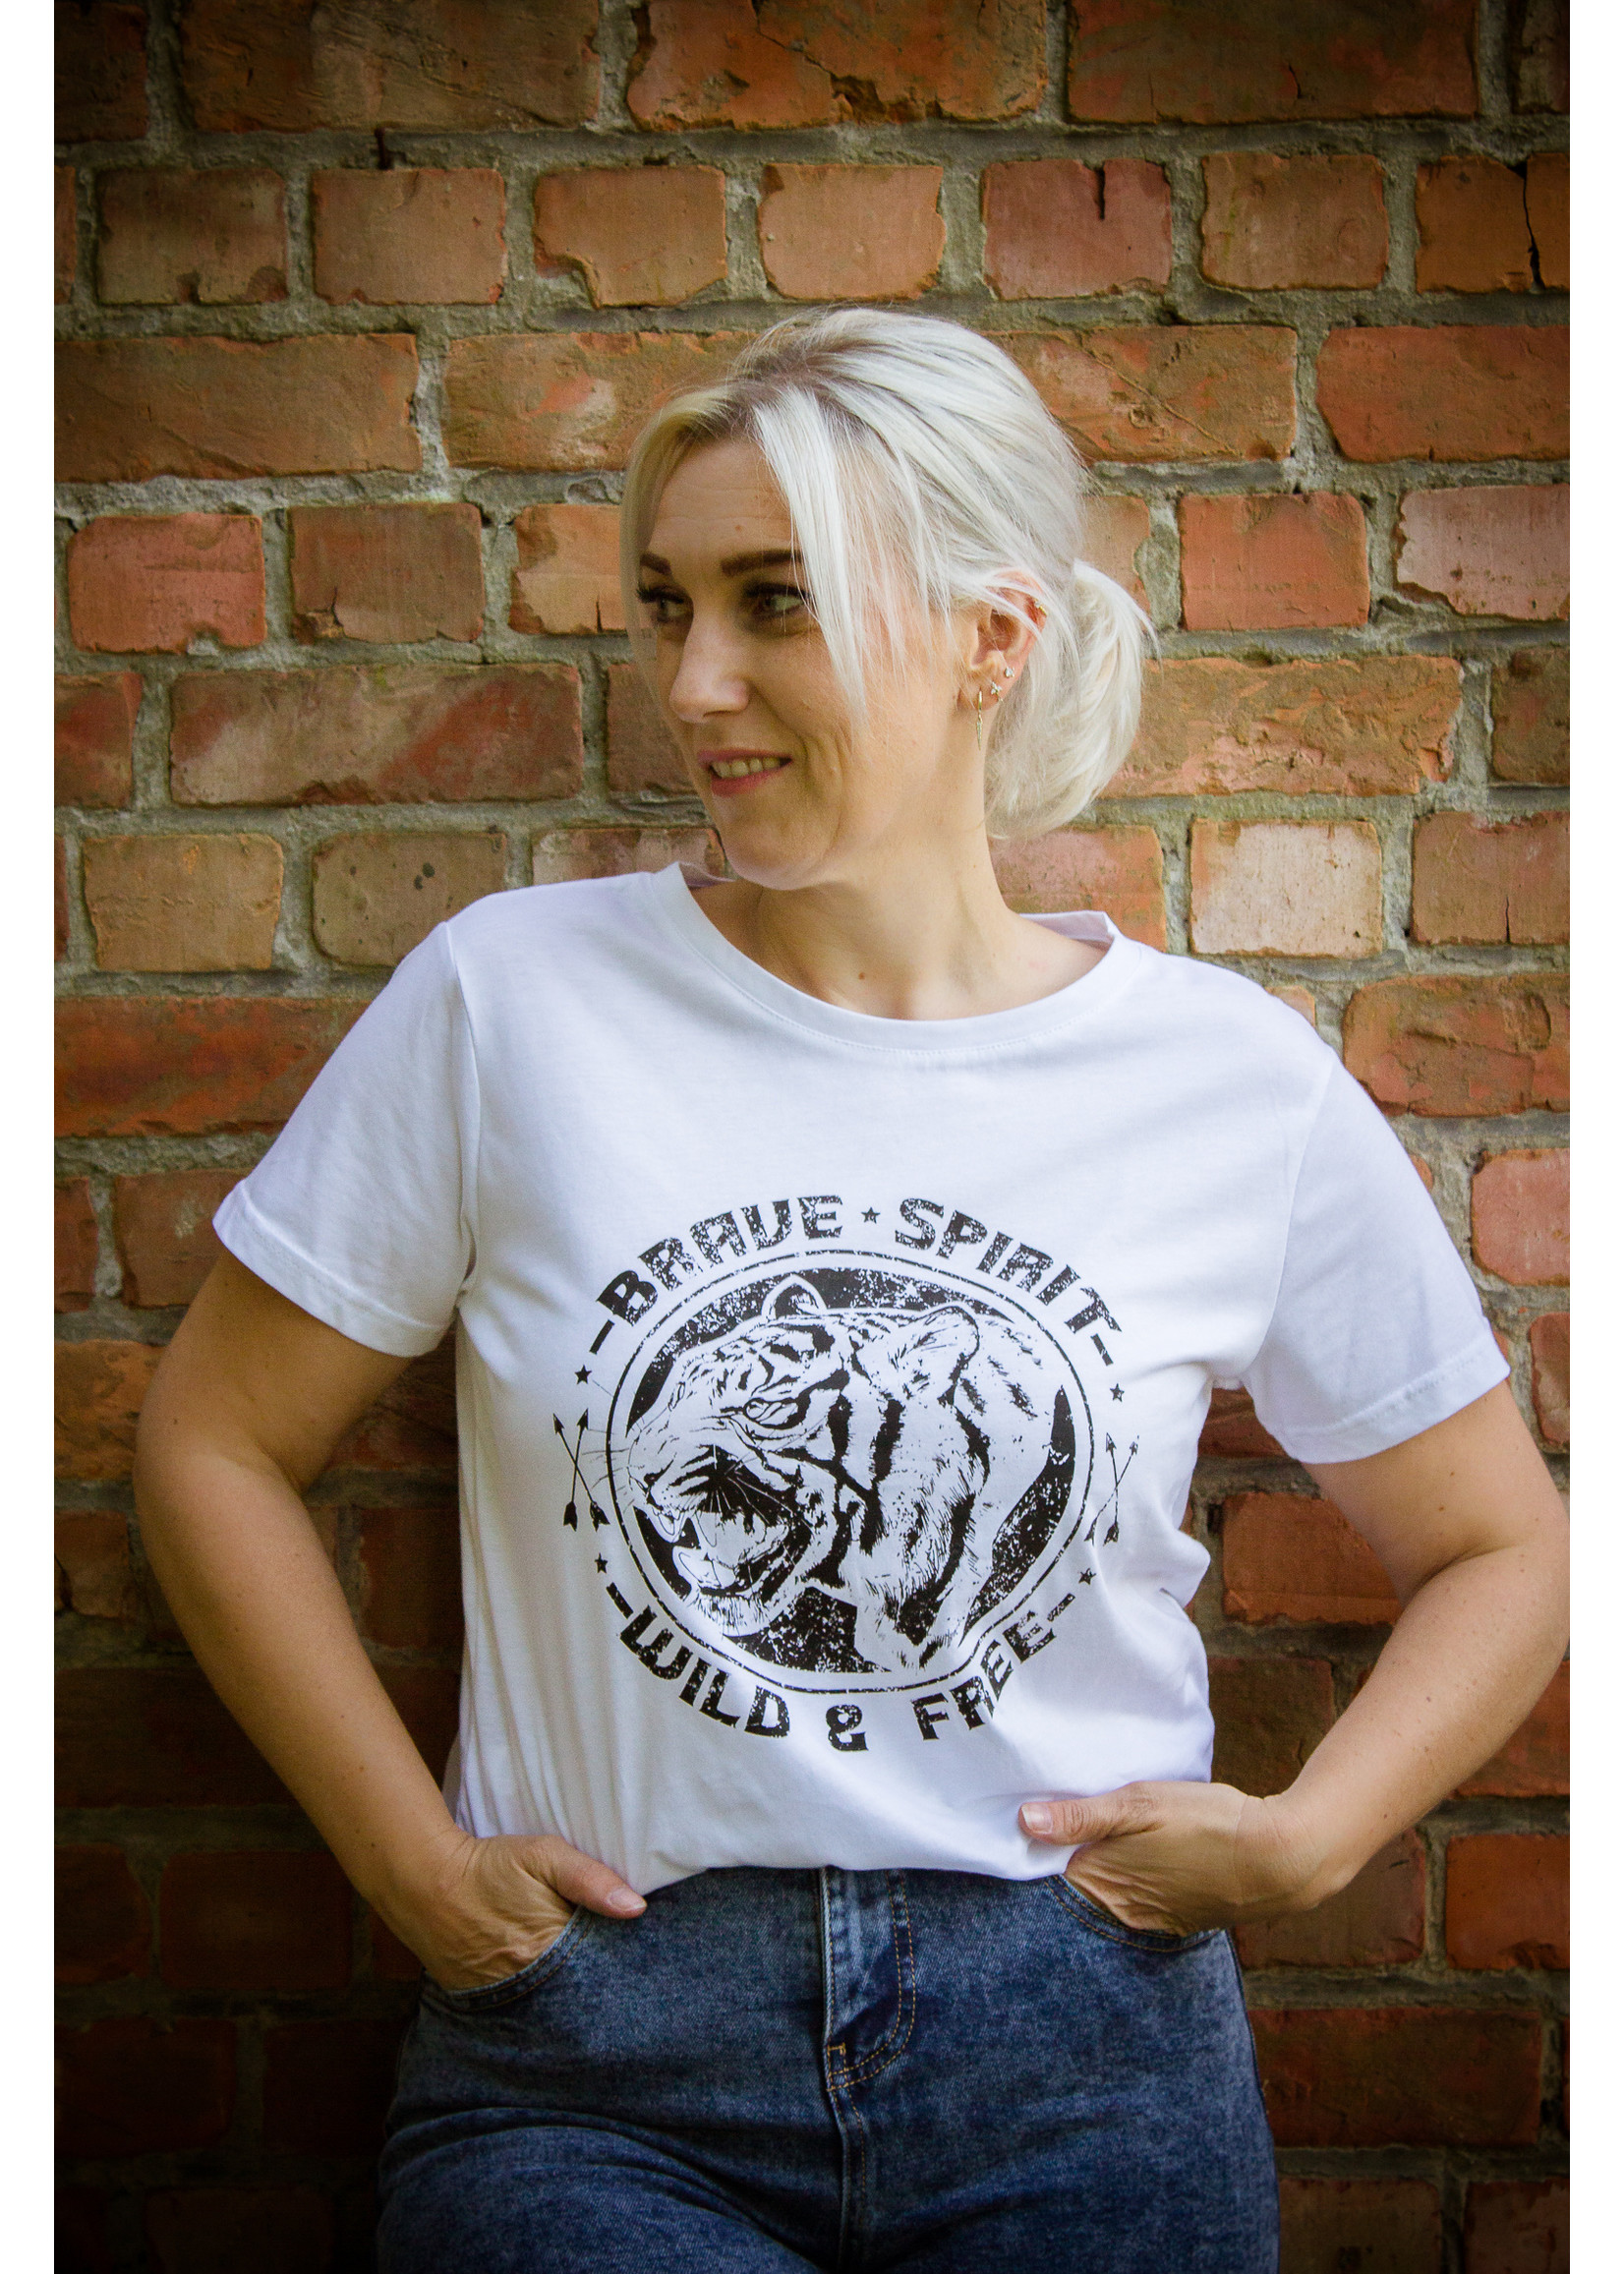 sisters point Wild and free shirt